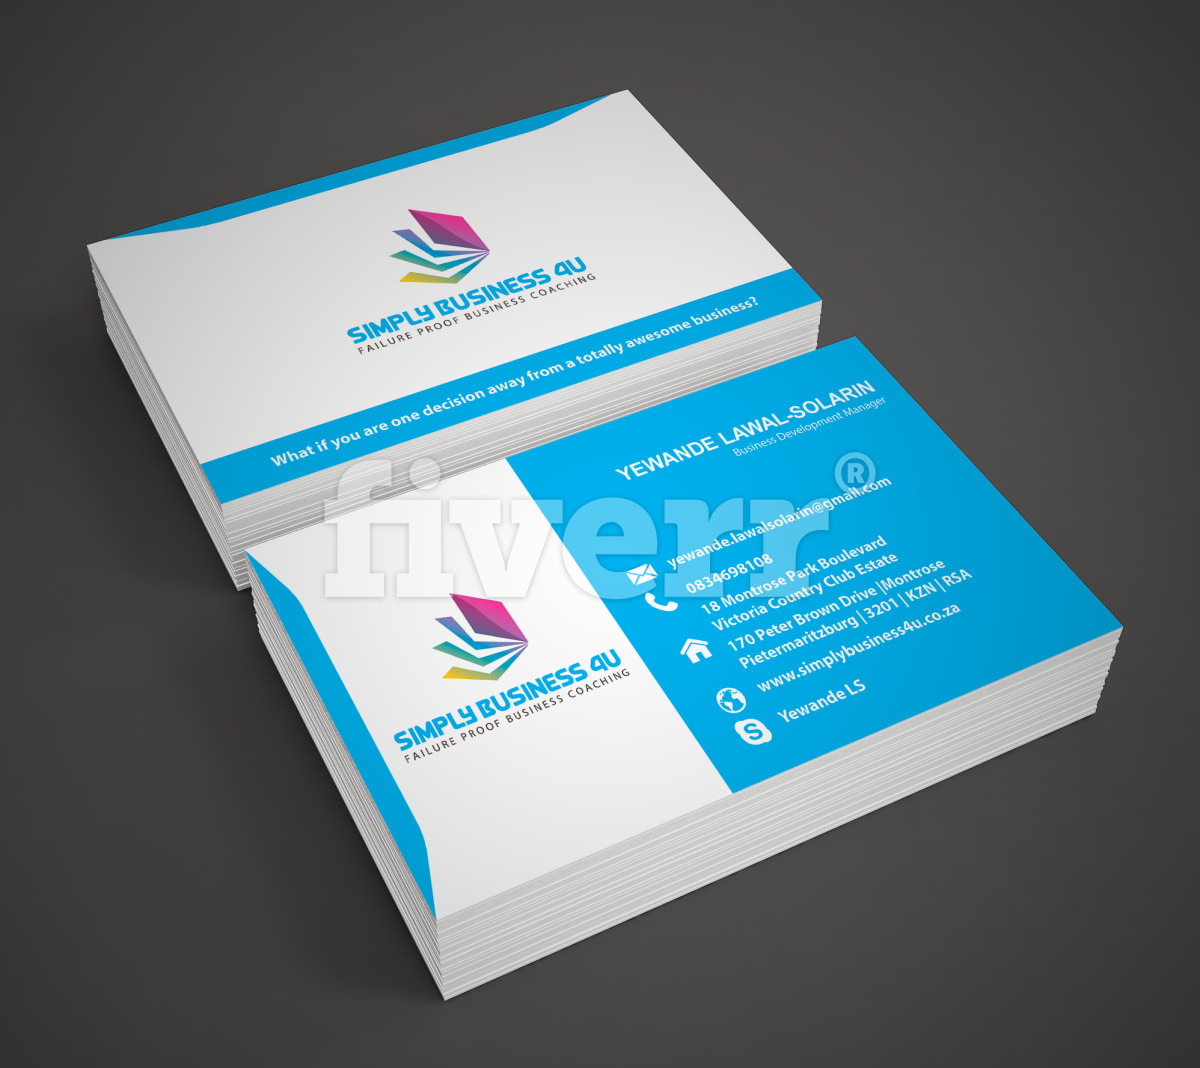 Design smart business card by Zahir24